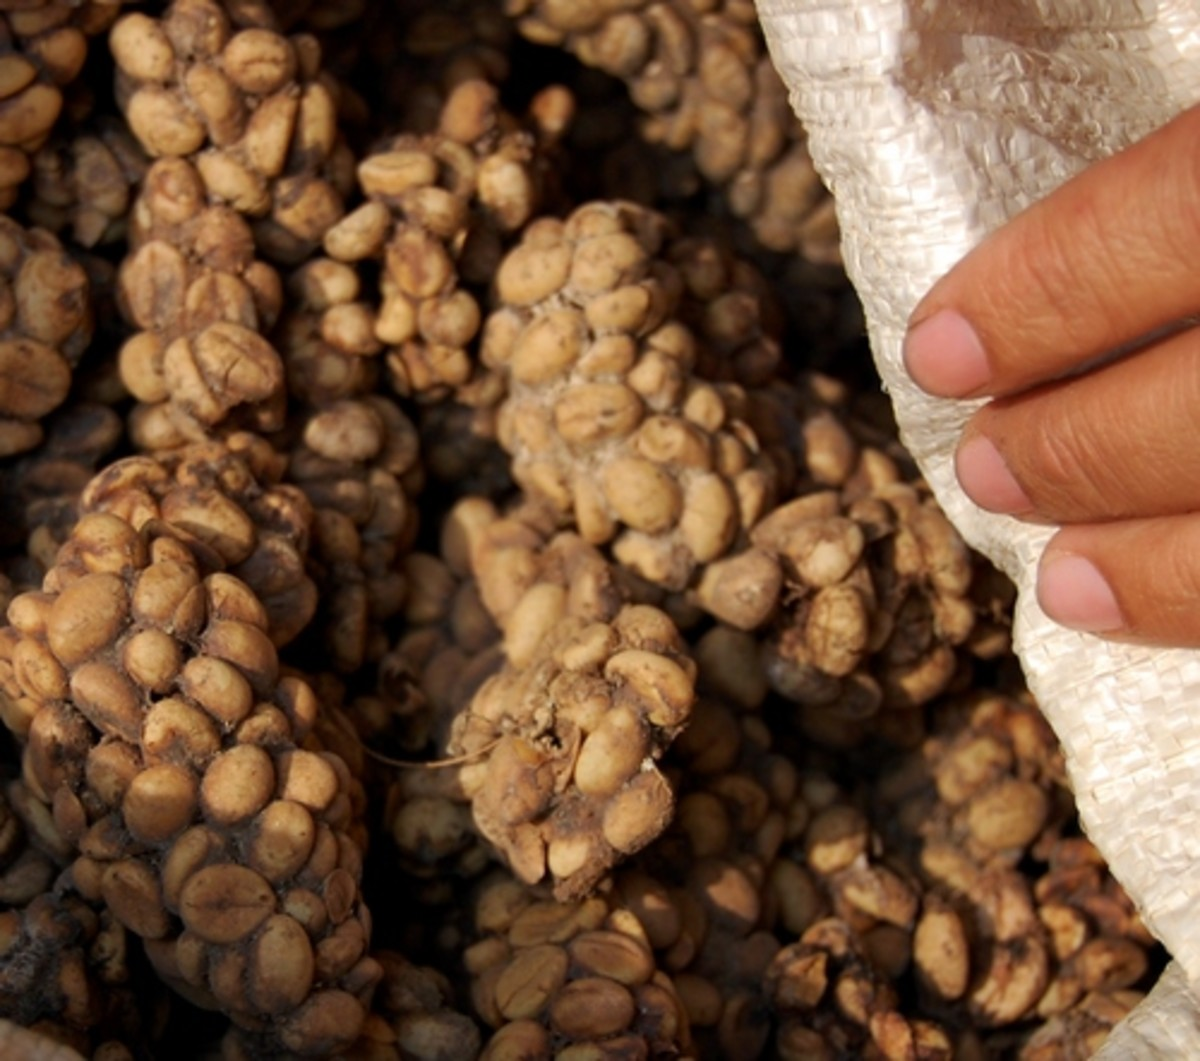 Kopi Luwak coffee beans embedded in civet feces